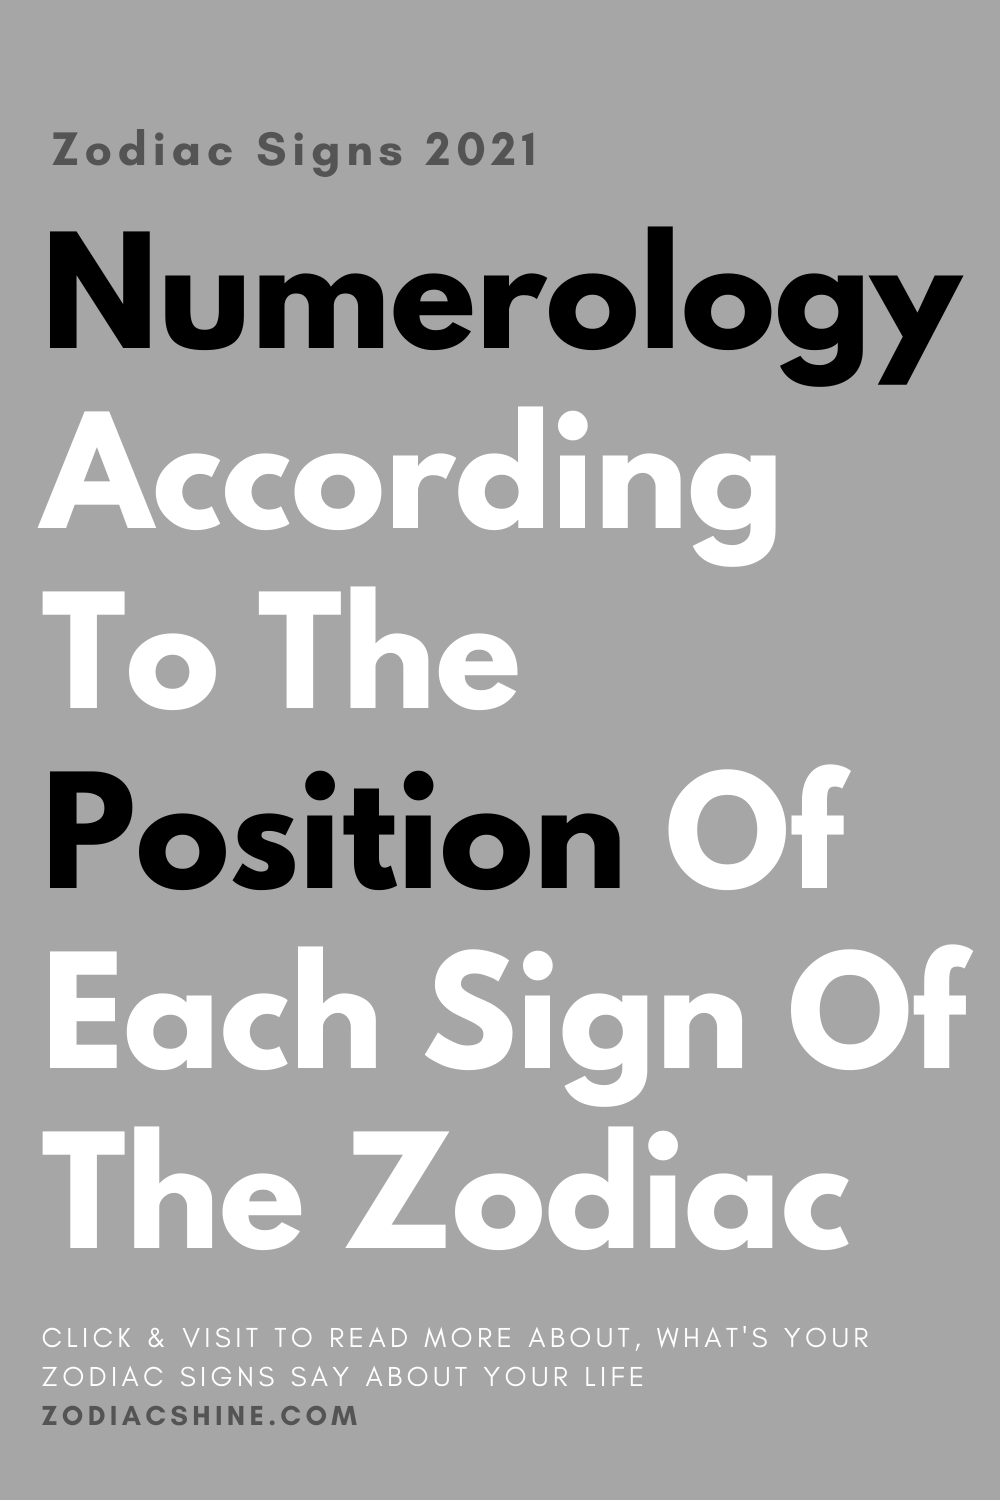 Numerology According To The Position Of Each Sign Of The Zodiac